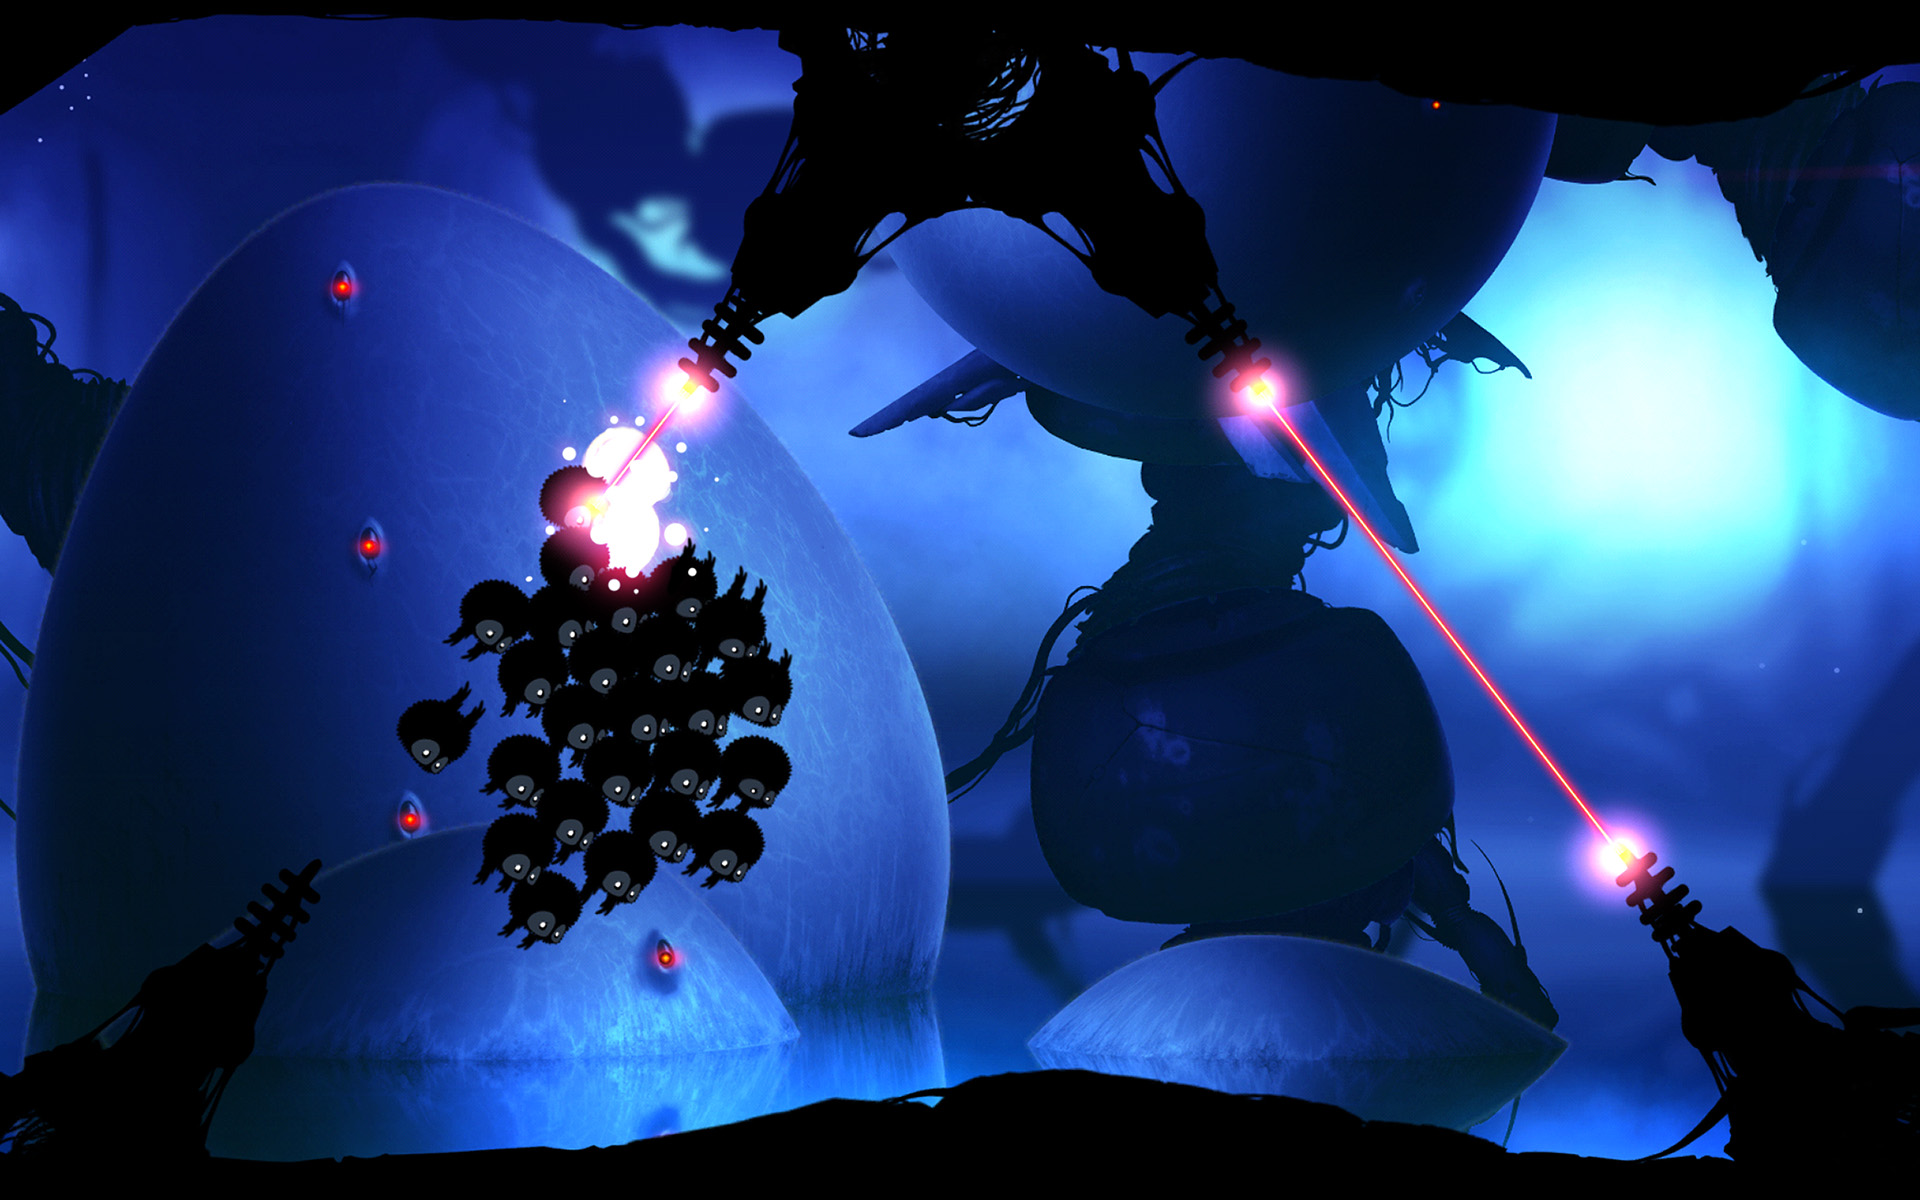 Badland - Day II Night